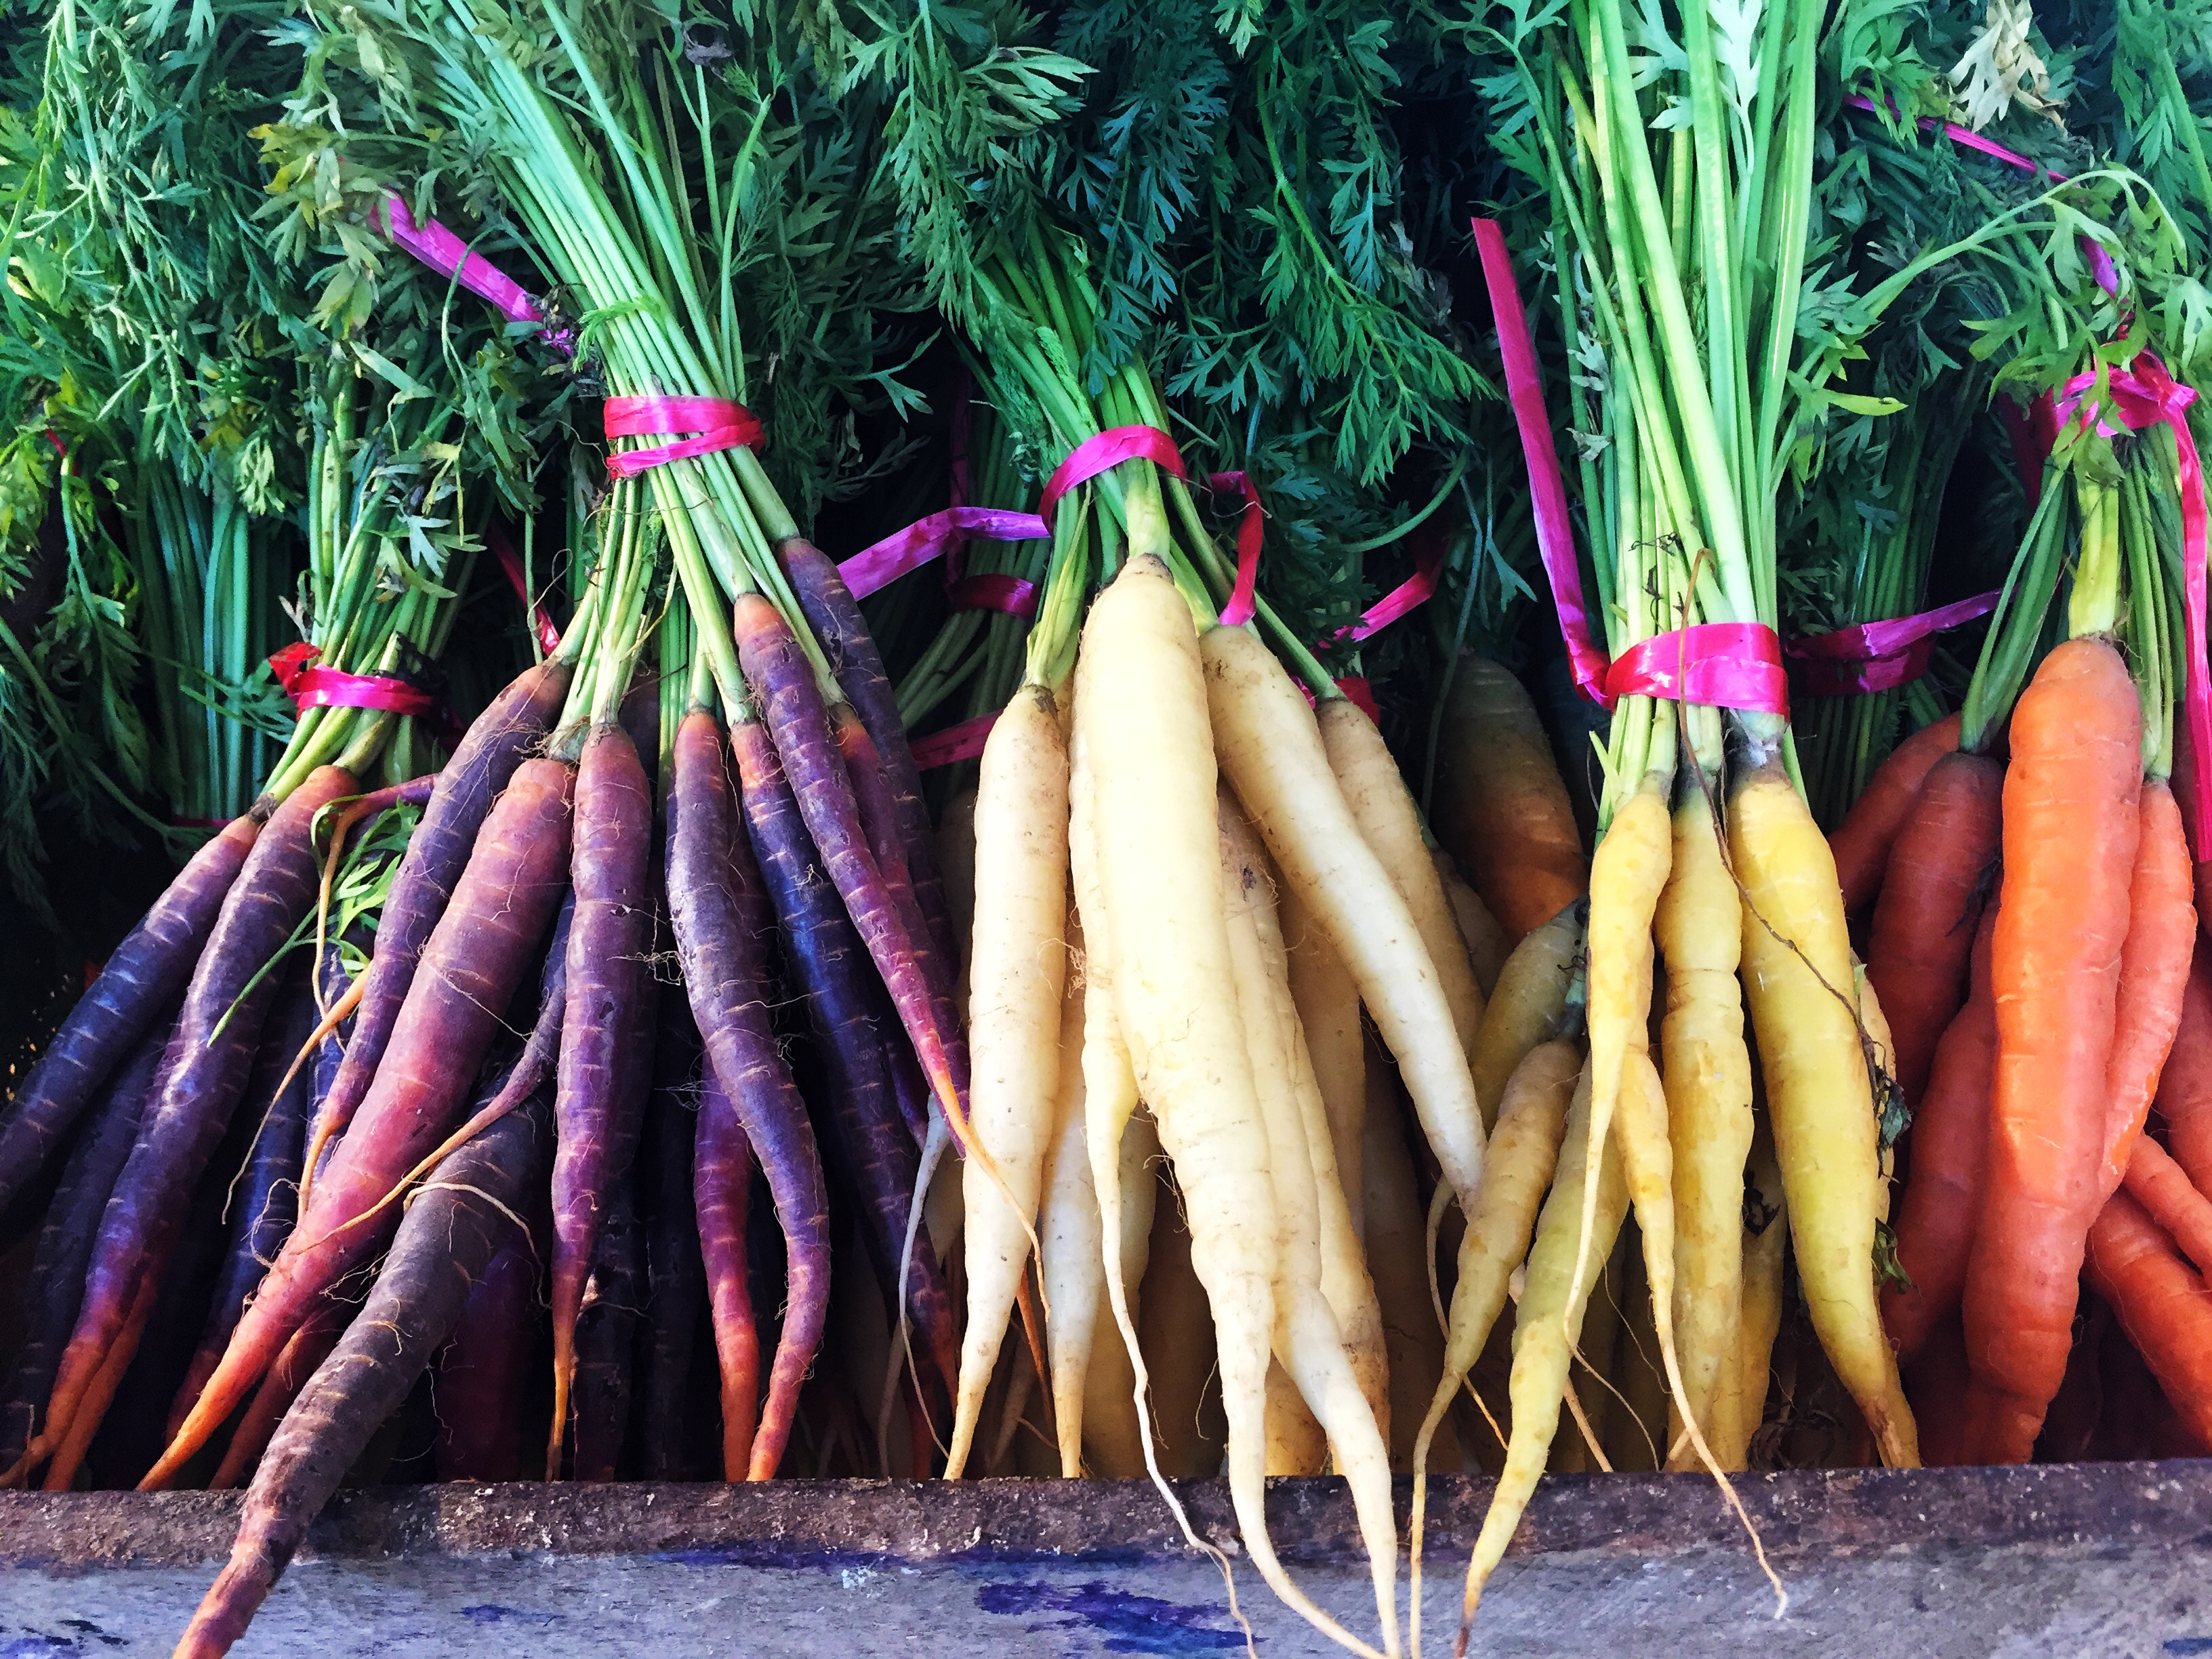 Orange, purple, white, and yellow heritage carrots